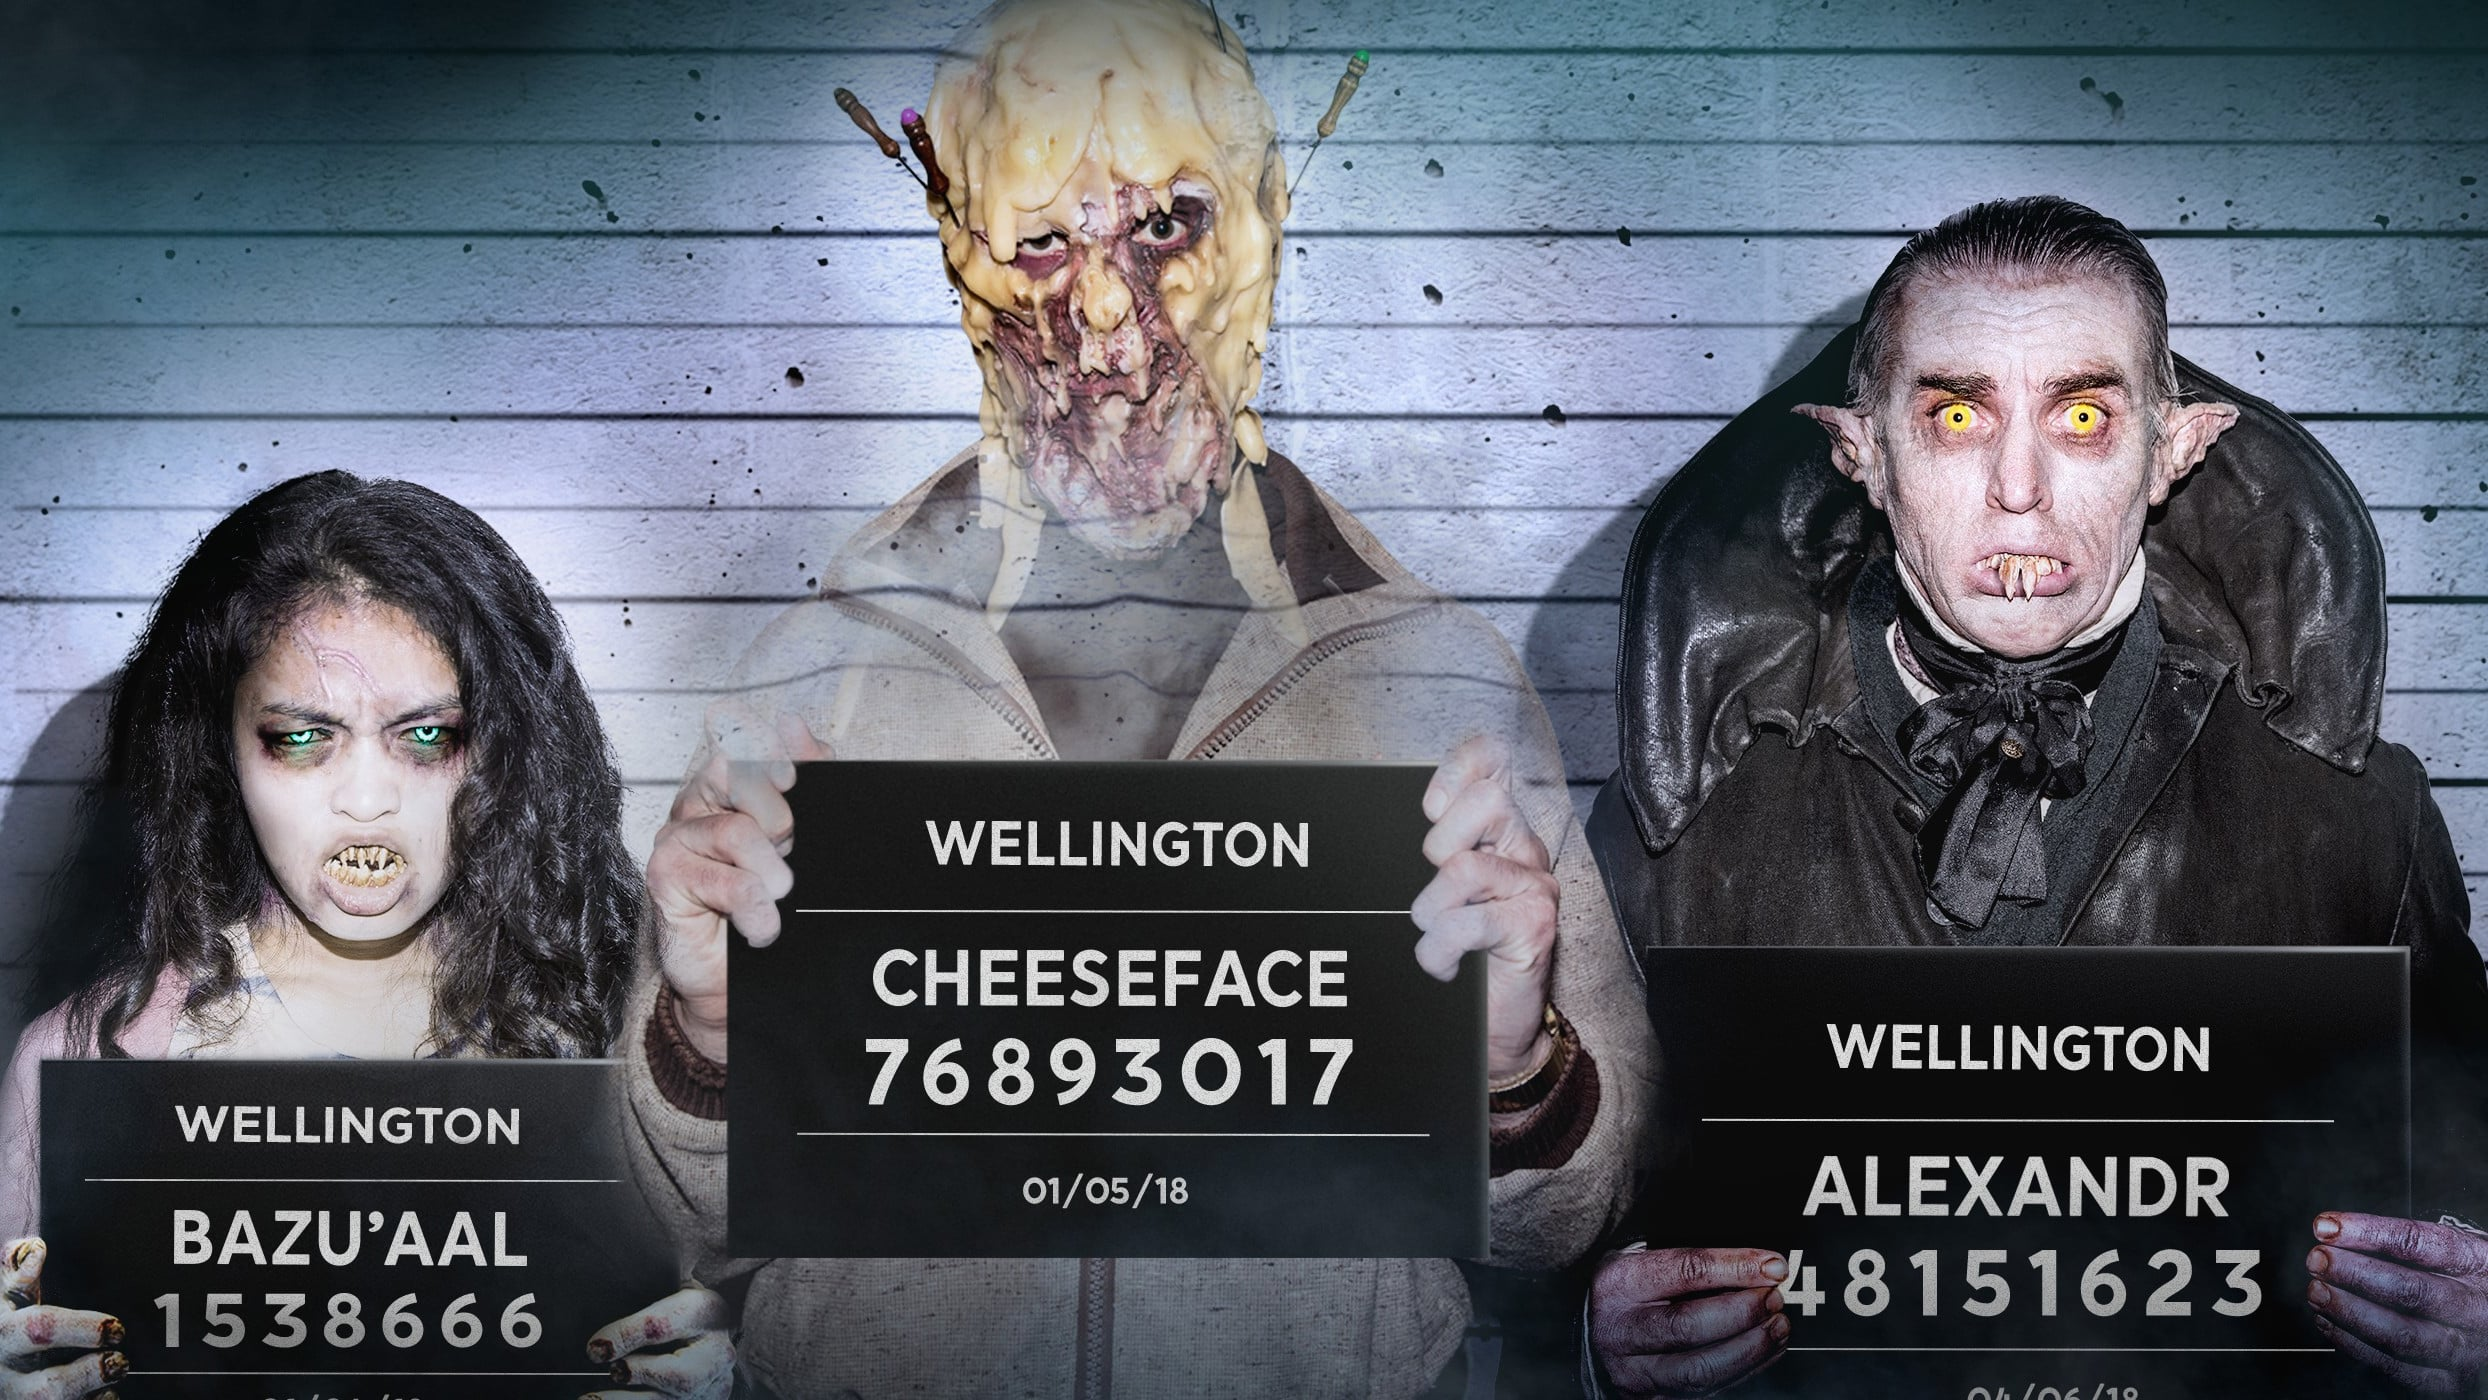 Wellington Paranormal is coming to The CW and HBO Max